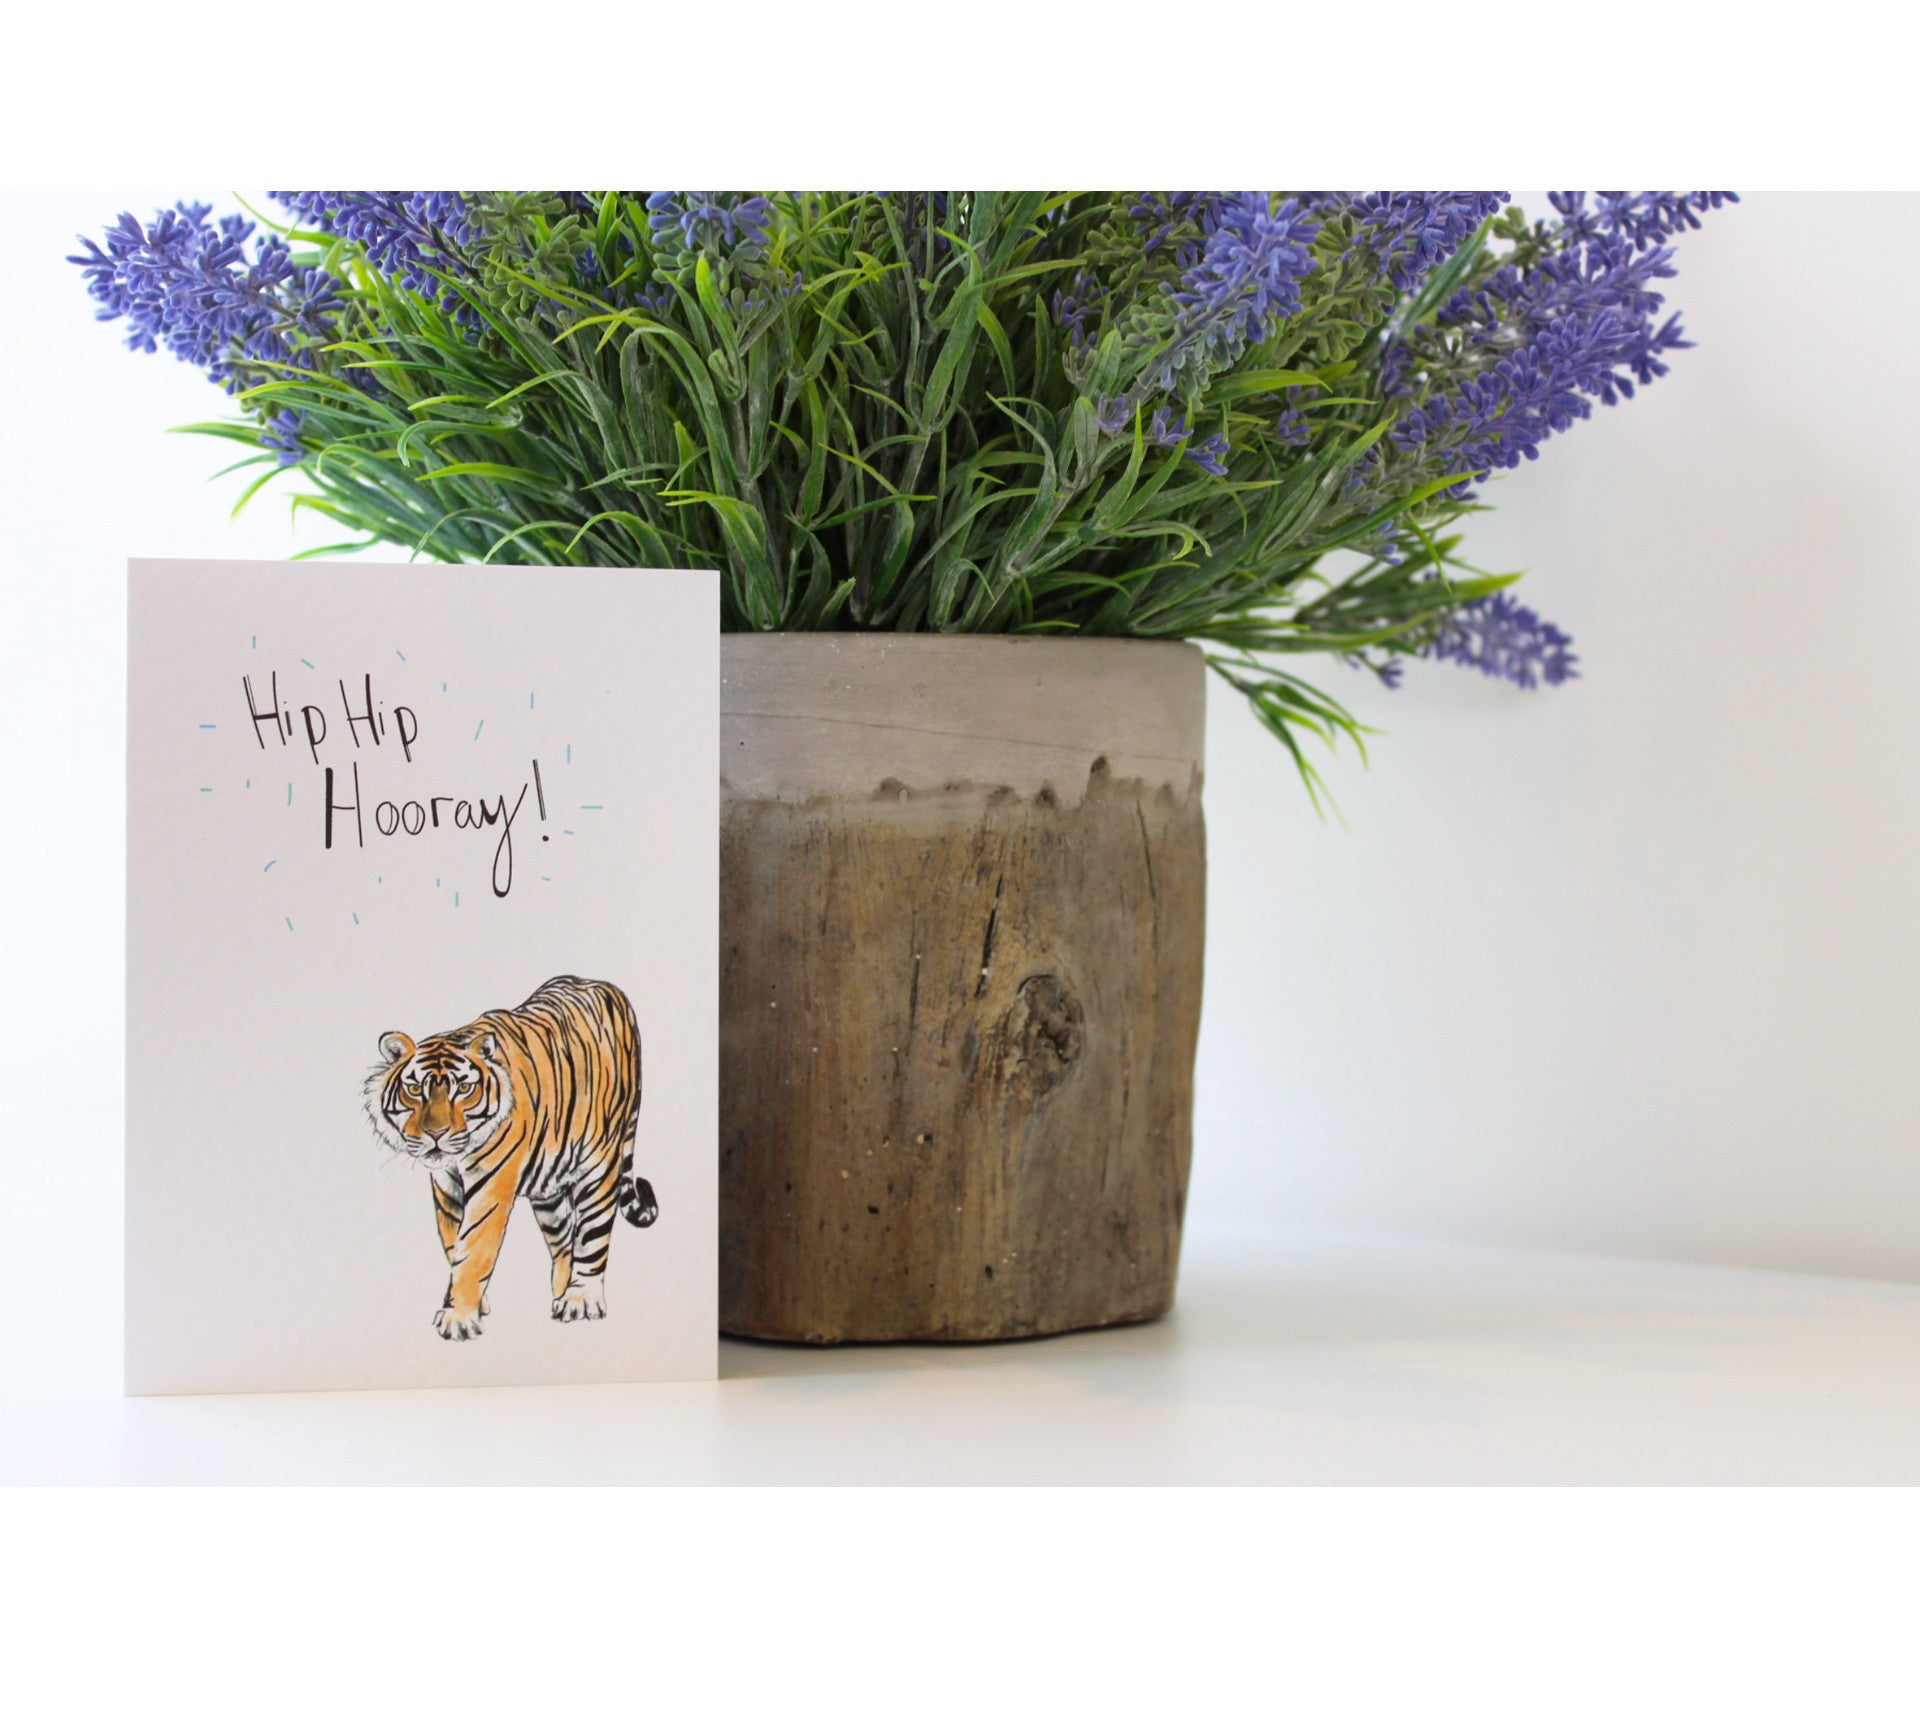 Hooray Tiger | Greeting Cards | Illustrated Animals - Merri | Illustration | Stationery + Gifts | Manchester